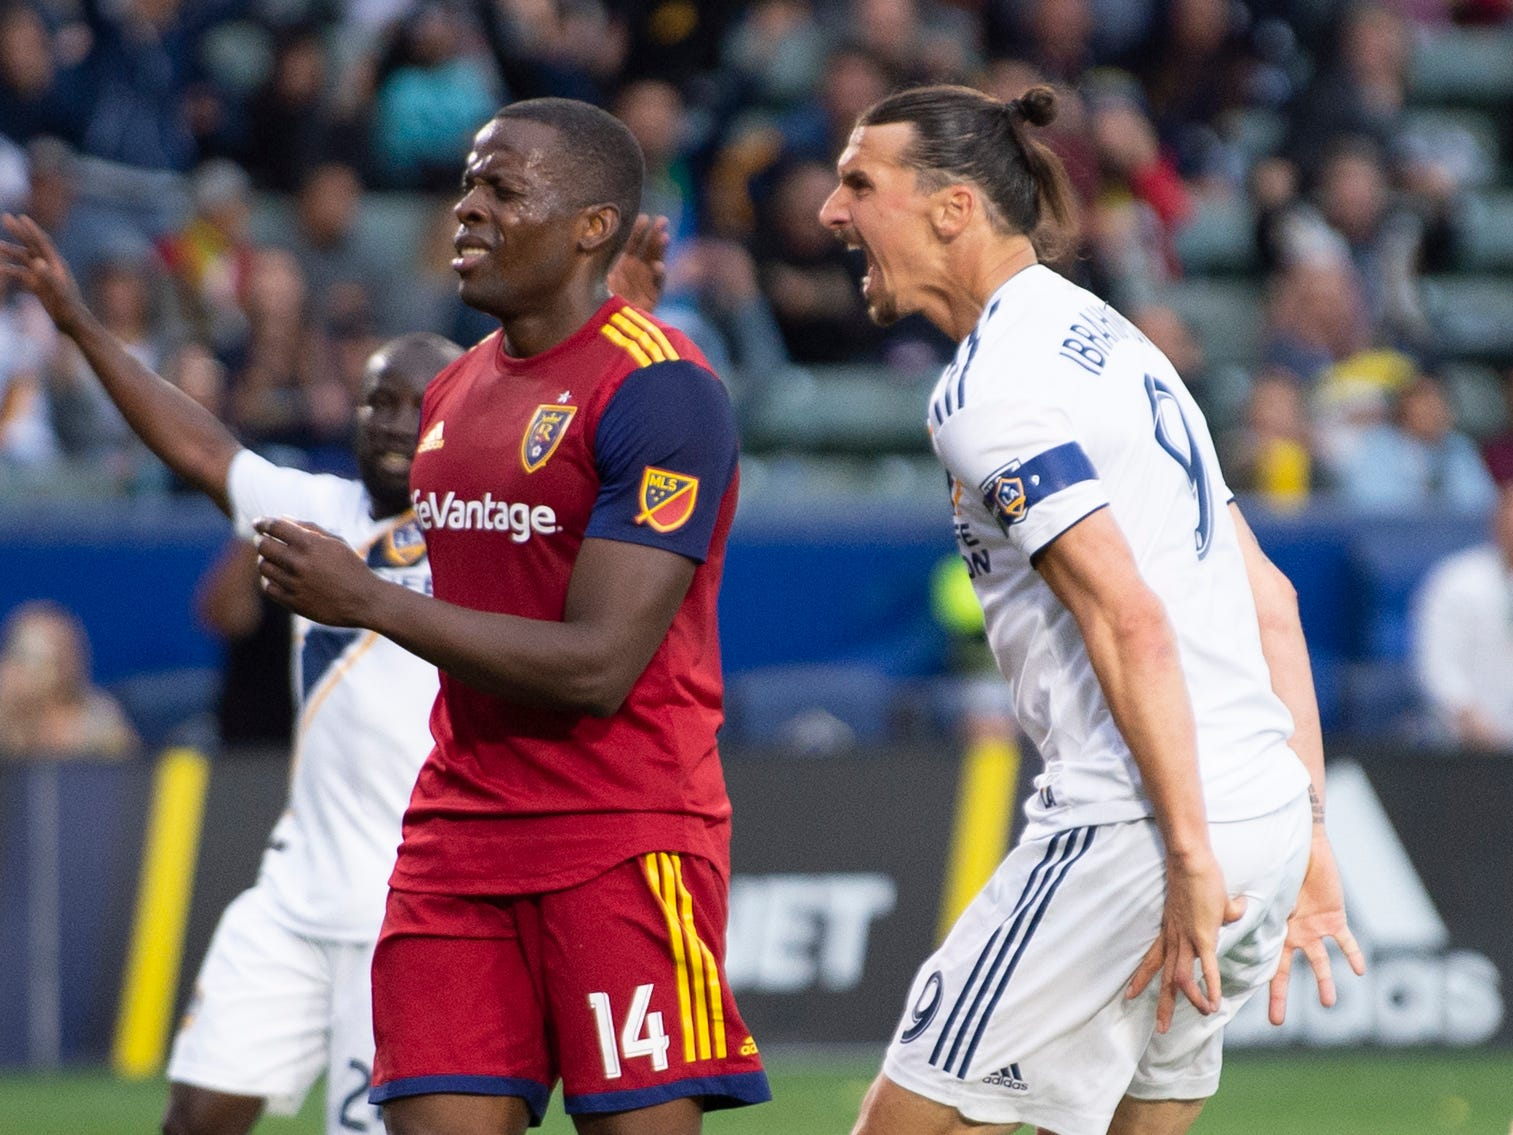 April 28: LA Galaxy forward Zlatan Ibrahimovic reacts after scoring a goal during the second half against Real Salt Lake at Dignity Health Sports Park. The Galaxy won, 2-1.